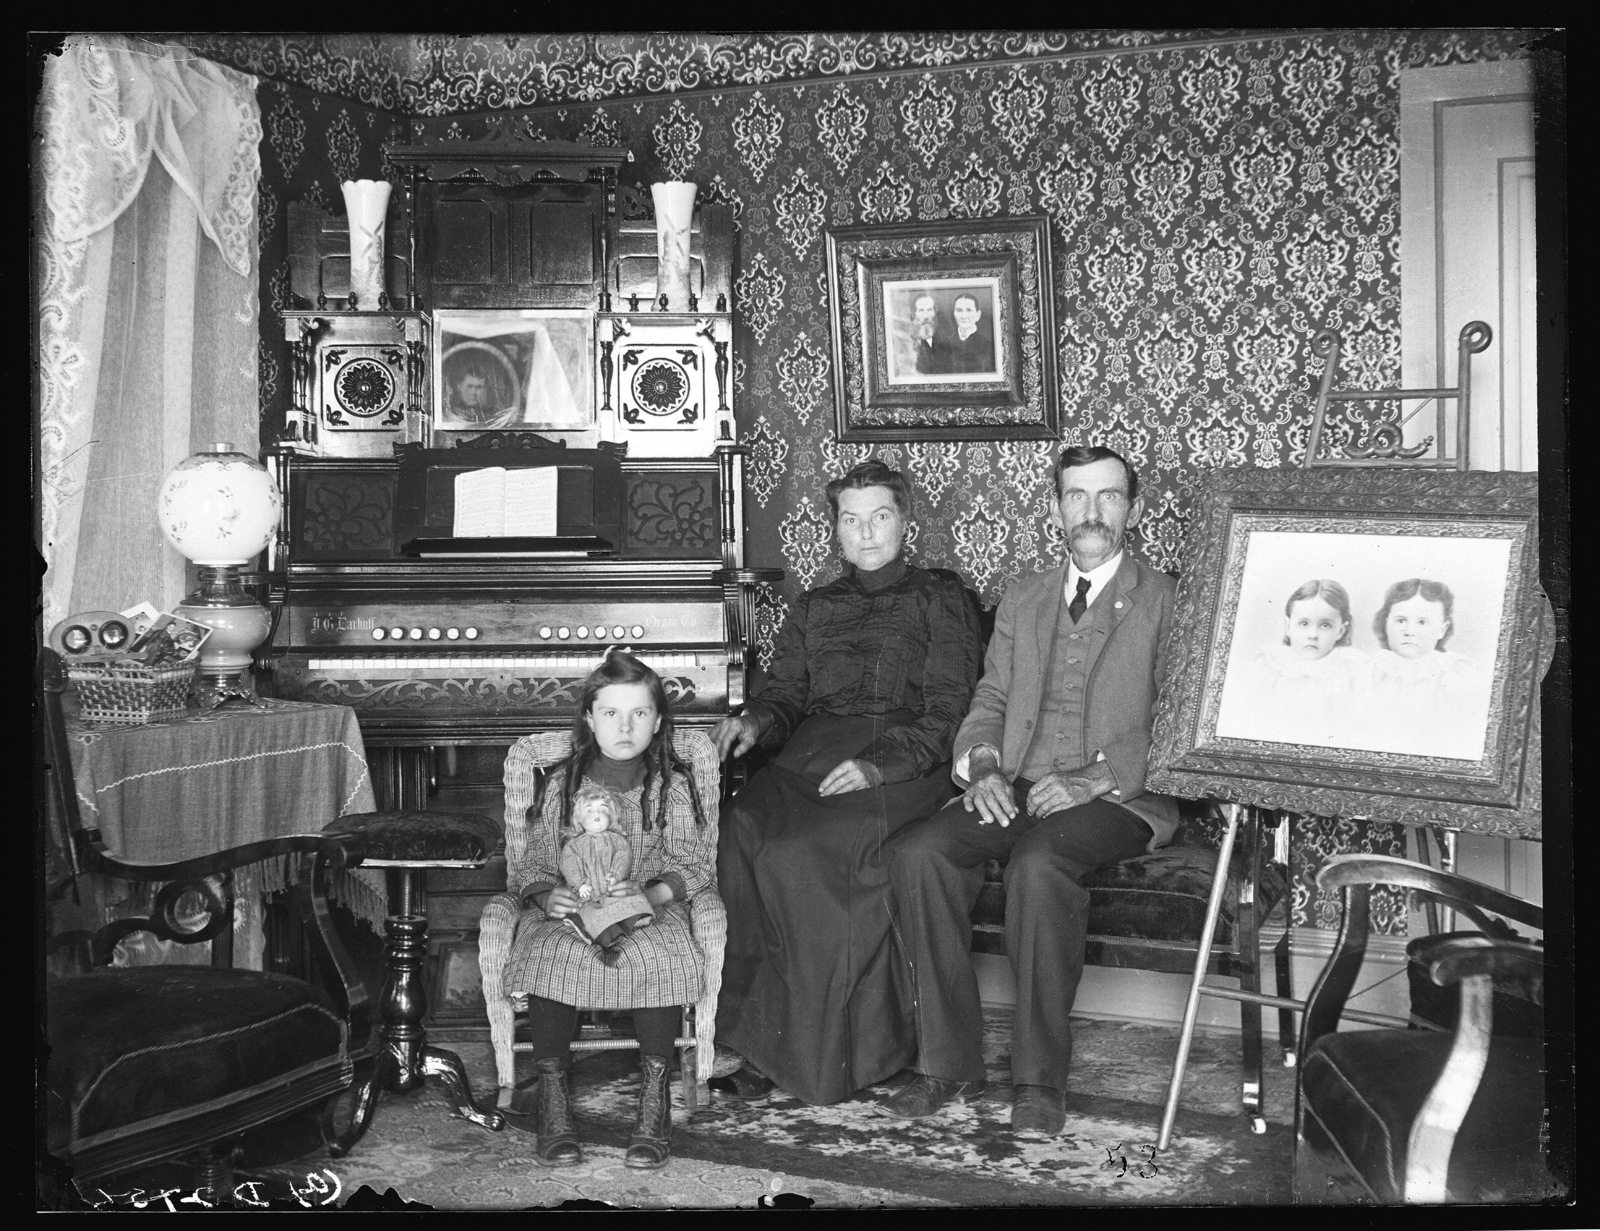 Mr. and Mrs. R.A. Acheson and their daughter in the living room of their farm house near Watertown, Nebraska.